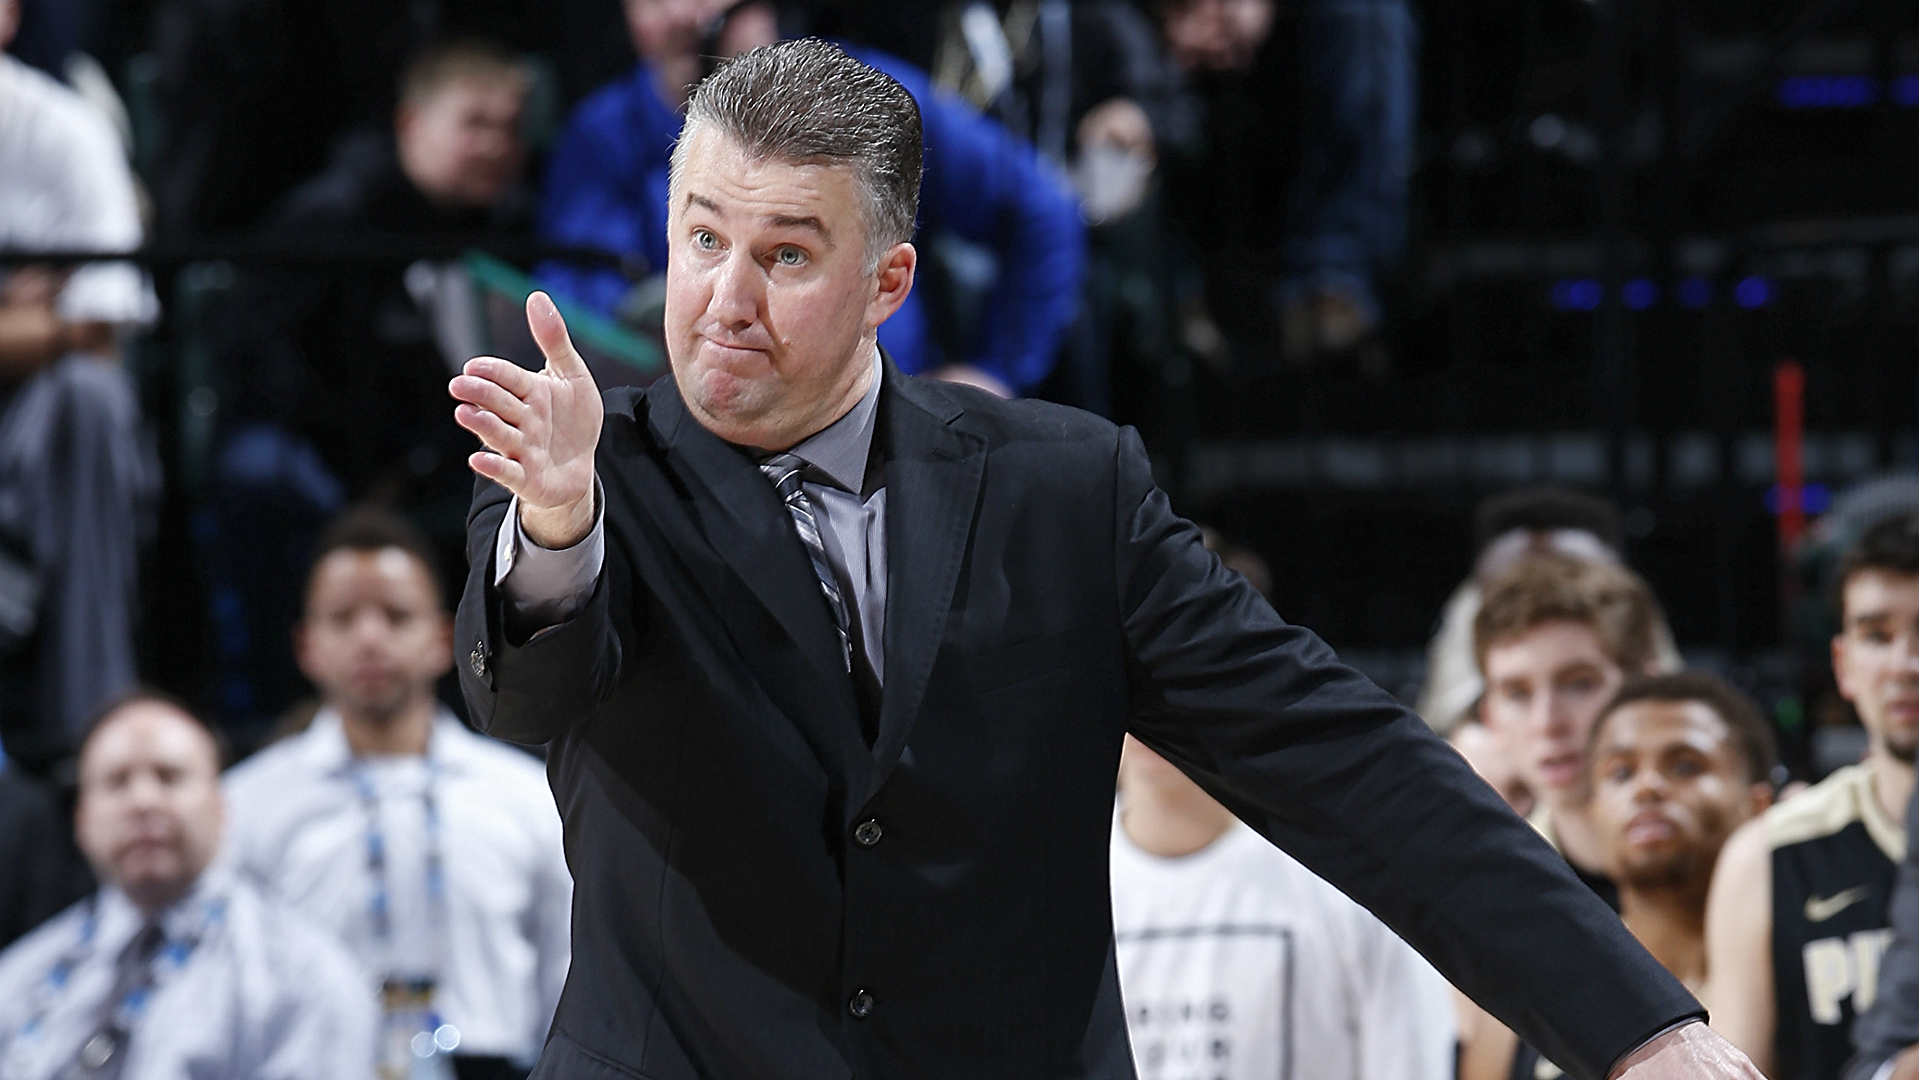 Matt-painter-071716-usnews-getty-ftr_1xmry35itiv99162xdkh8hptcg